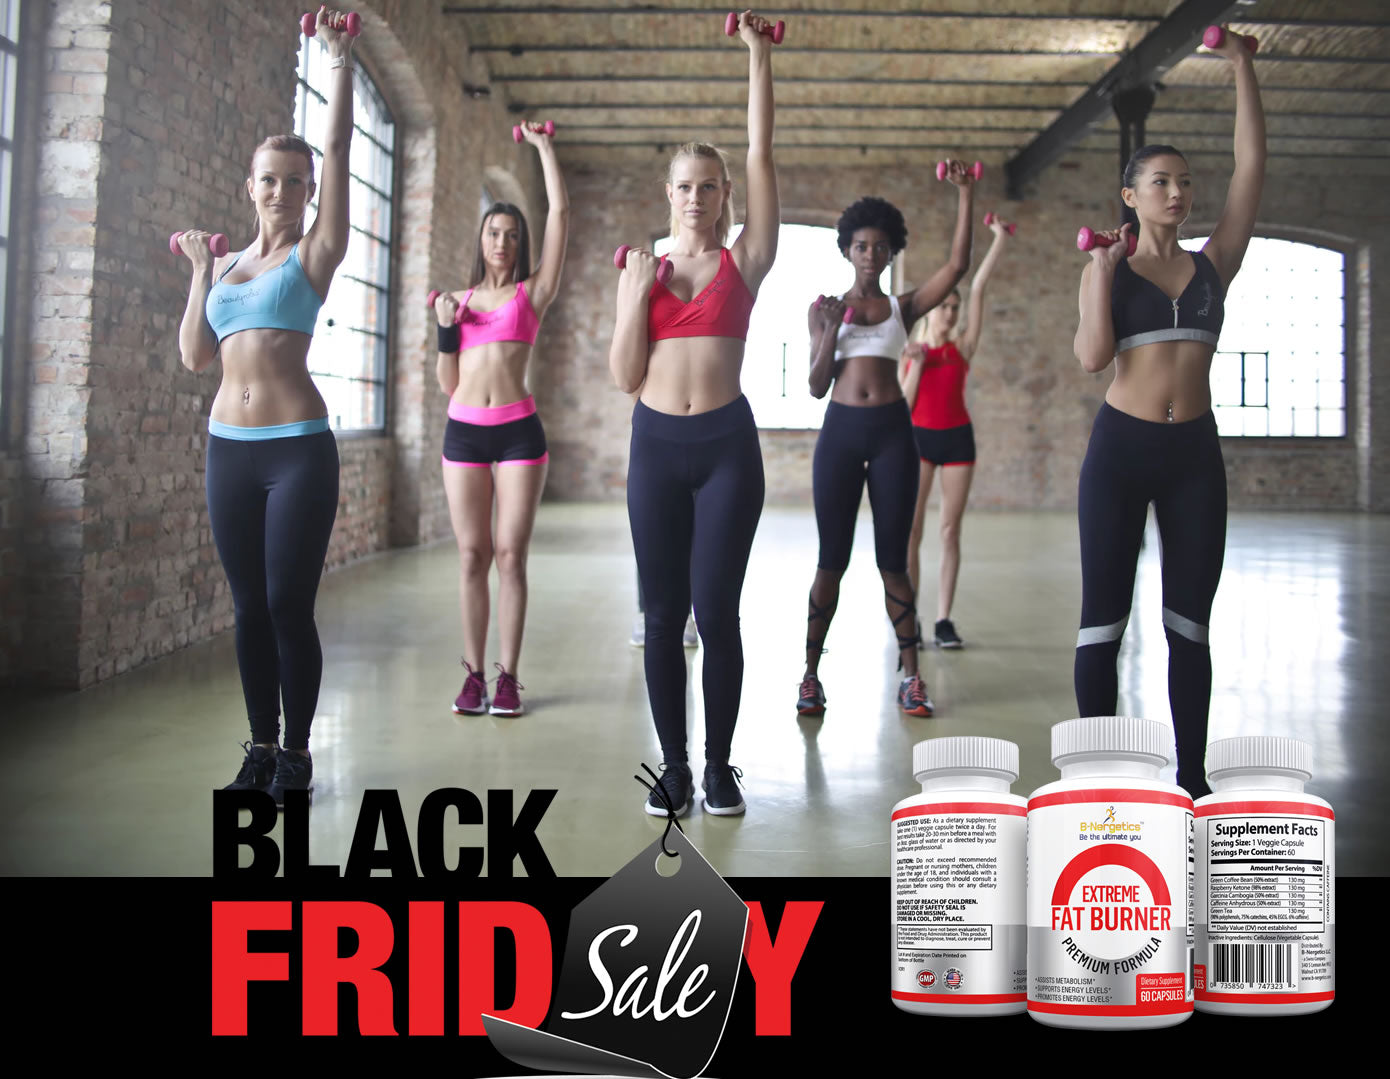 extreme fat burner black friday